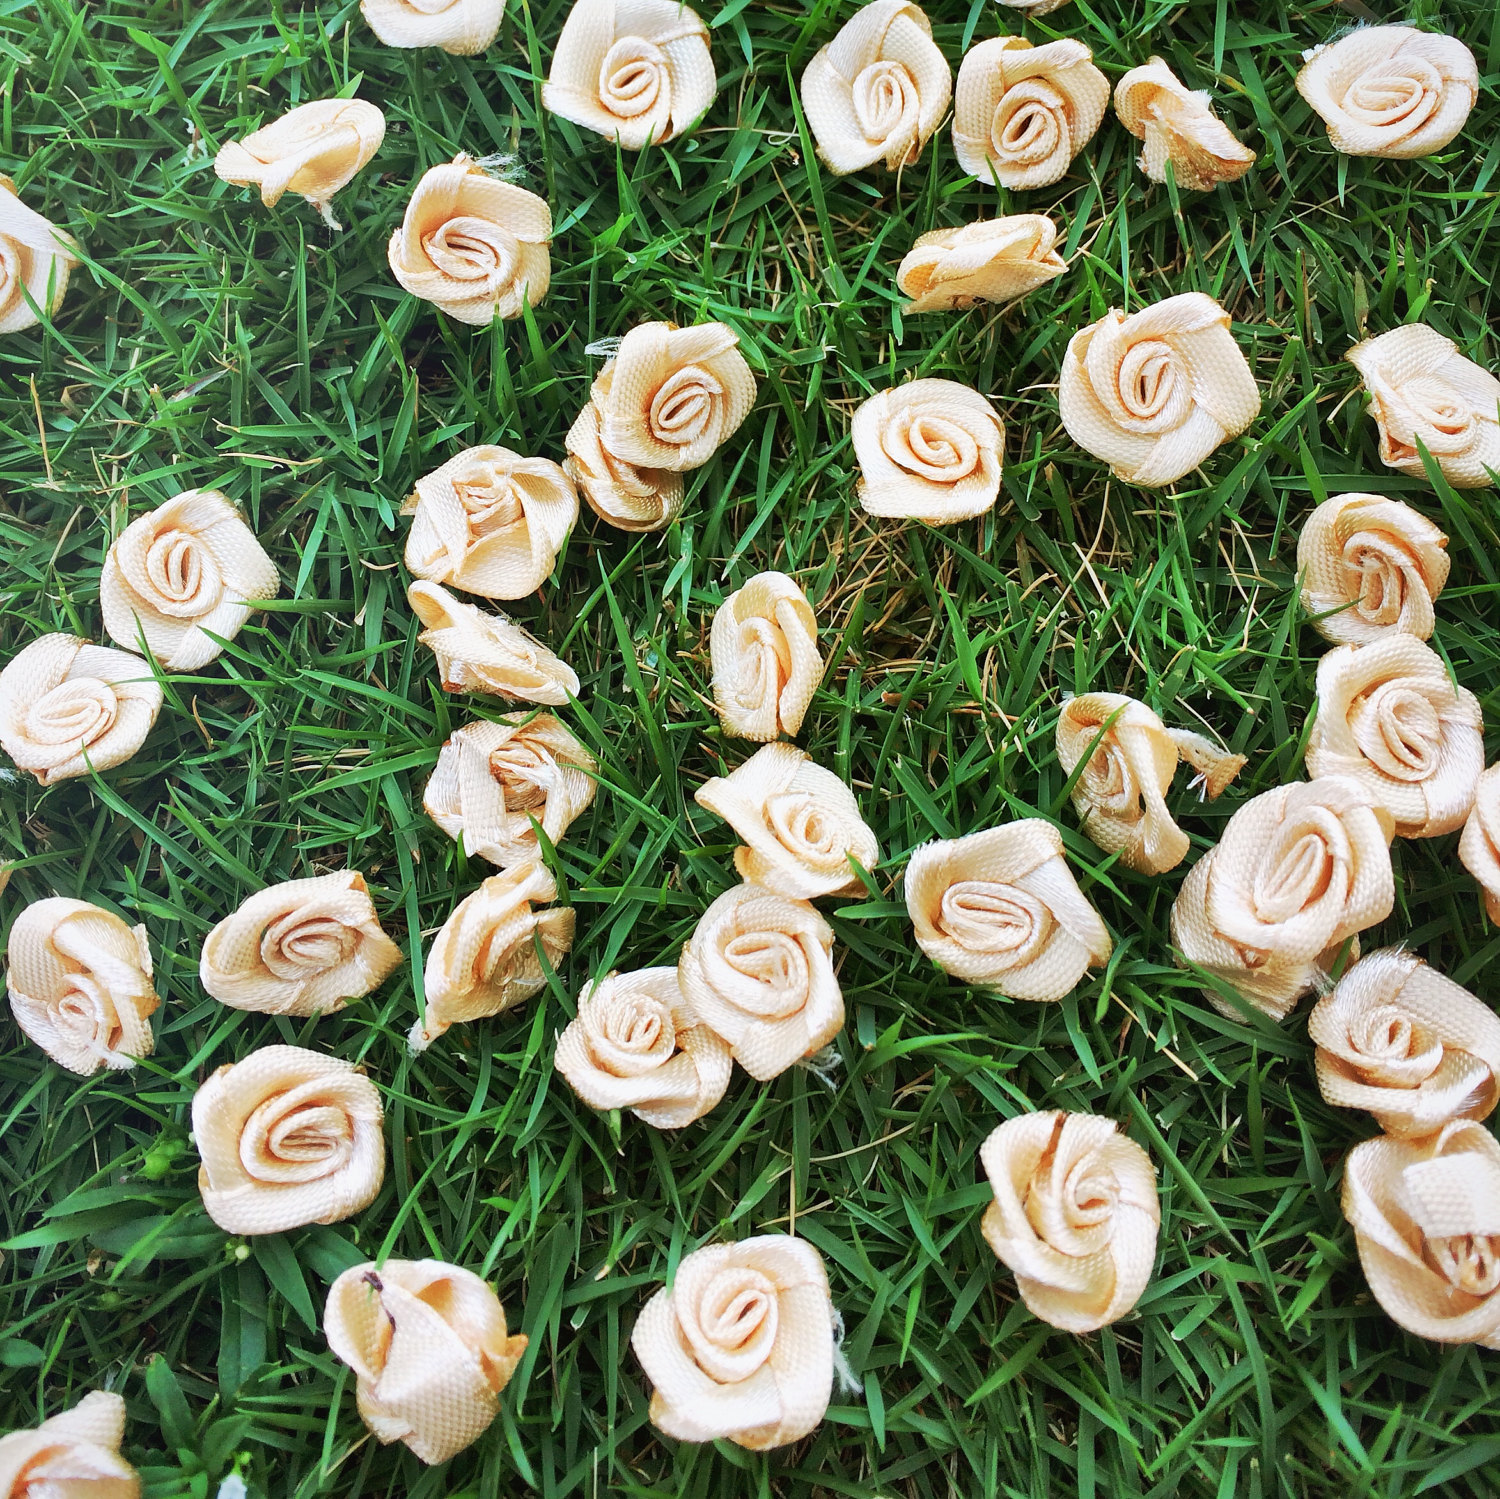 50 Gold Satin Rose Buds,Metallic Gold Roses,Craft Flowers,Sewing Supplies,Decor